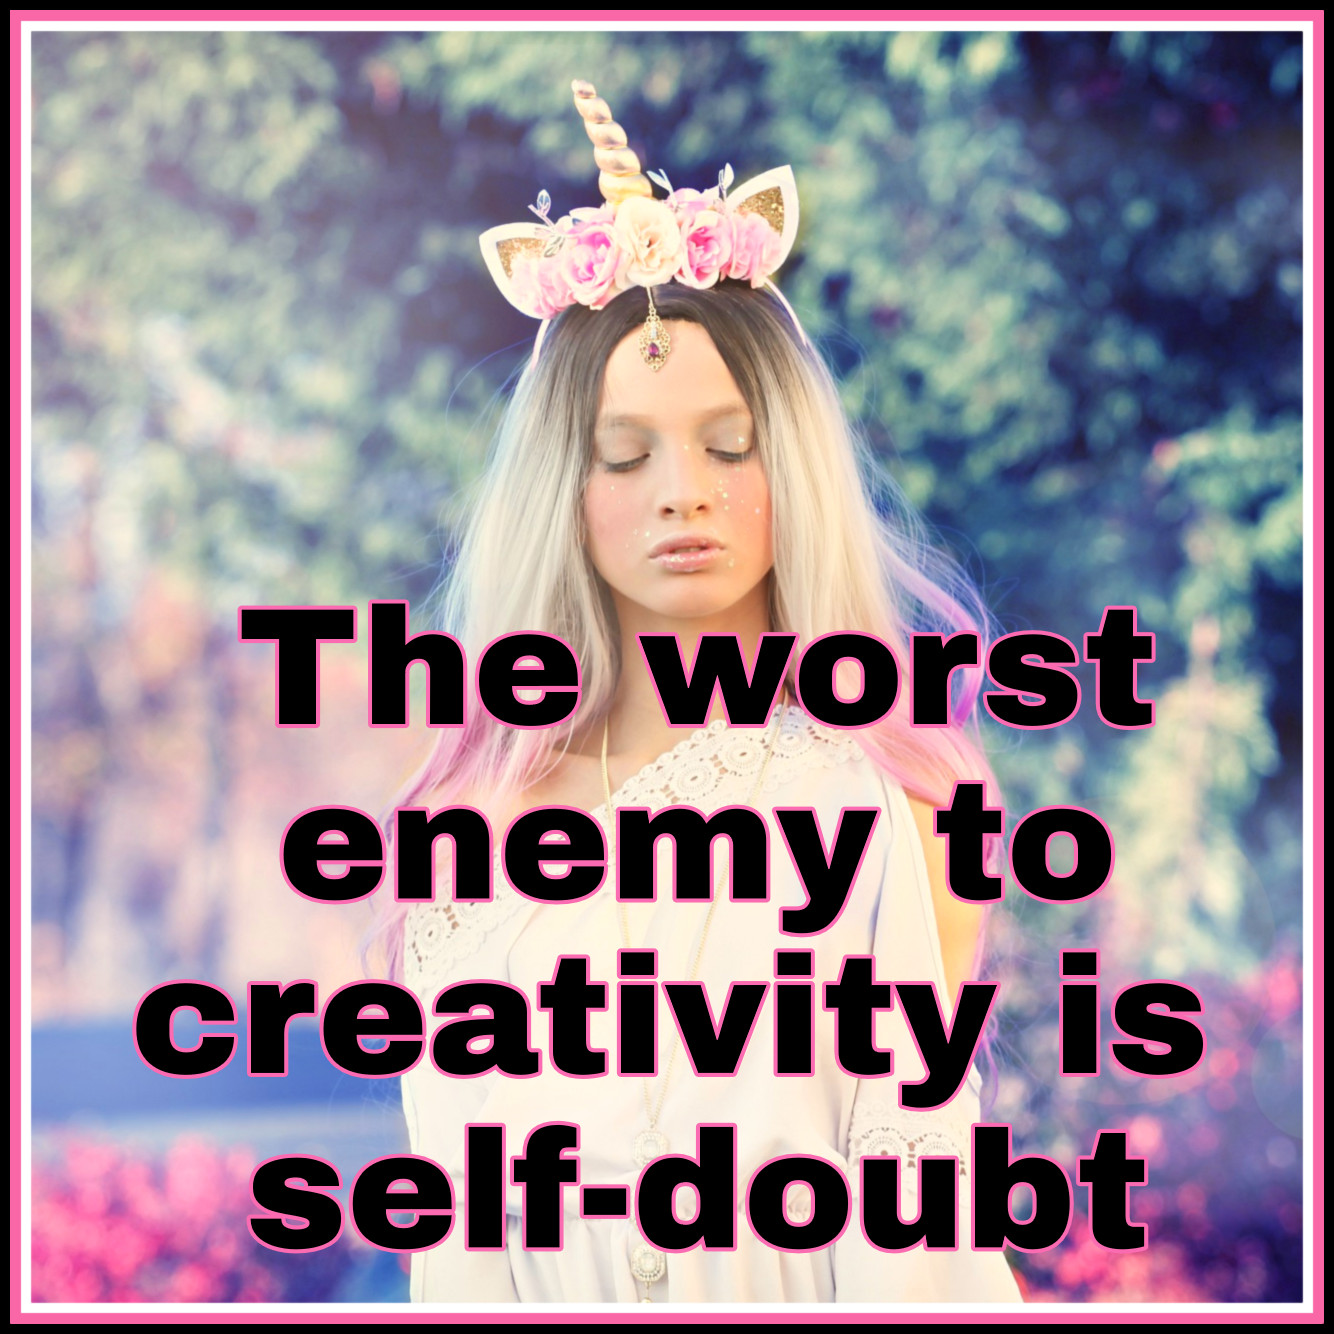 And by the way, everything in life is writable about if you have the outgoing guts to do it, and the imagination to improvise. The worst enemy to creativity is self-doubt. Sylvia Plath